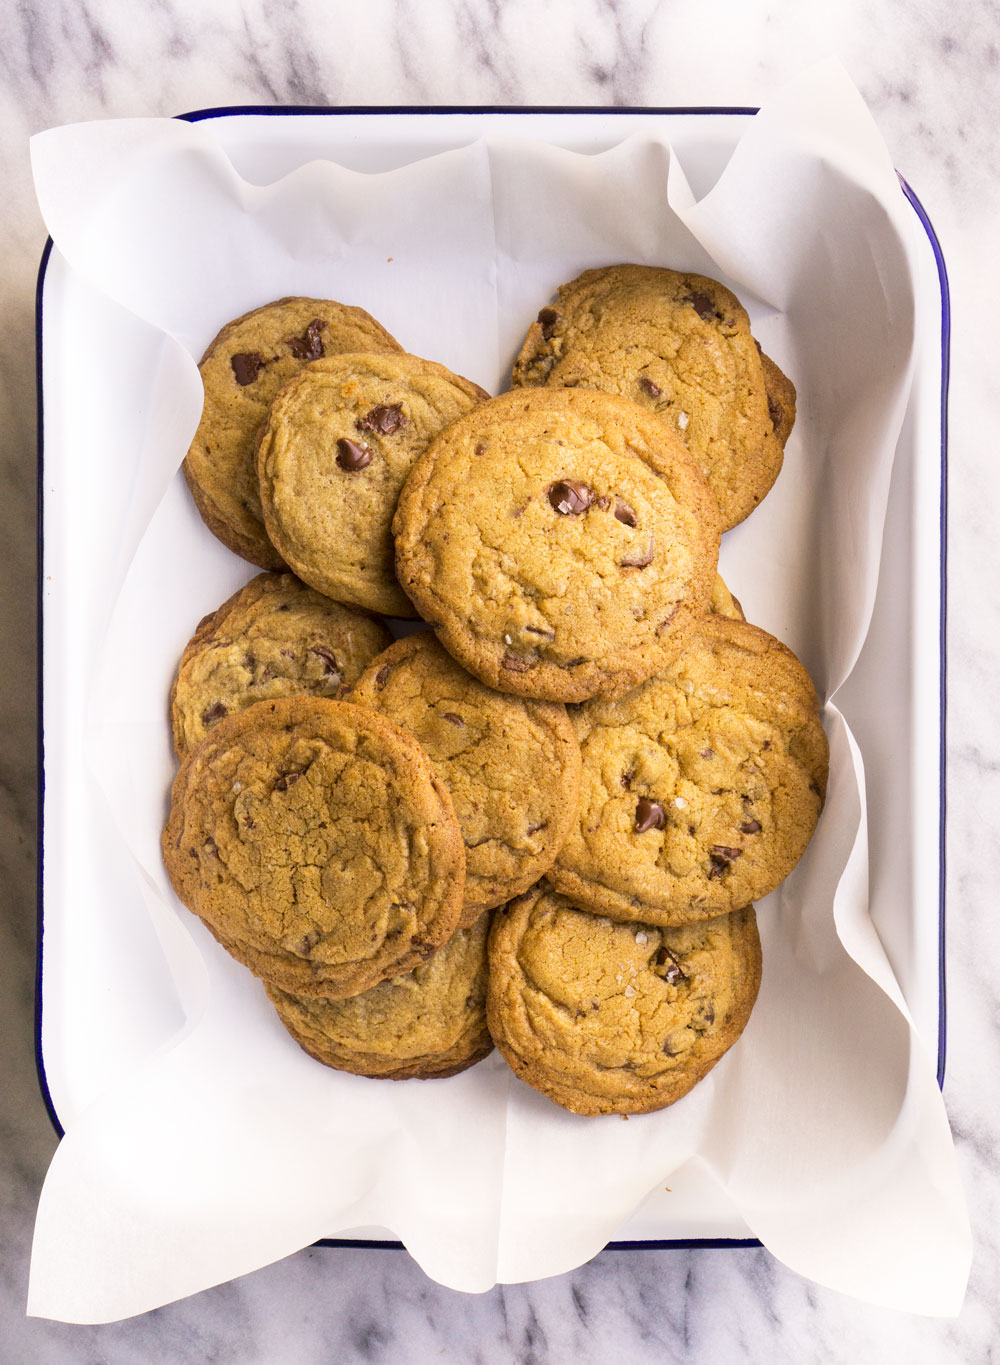 I have discovered the secret to the perfect chocolate chip cookie- you know the cookie that is all crispy on the outside and gooey on the inside.